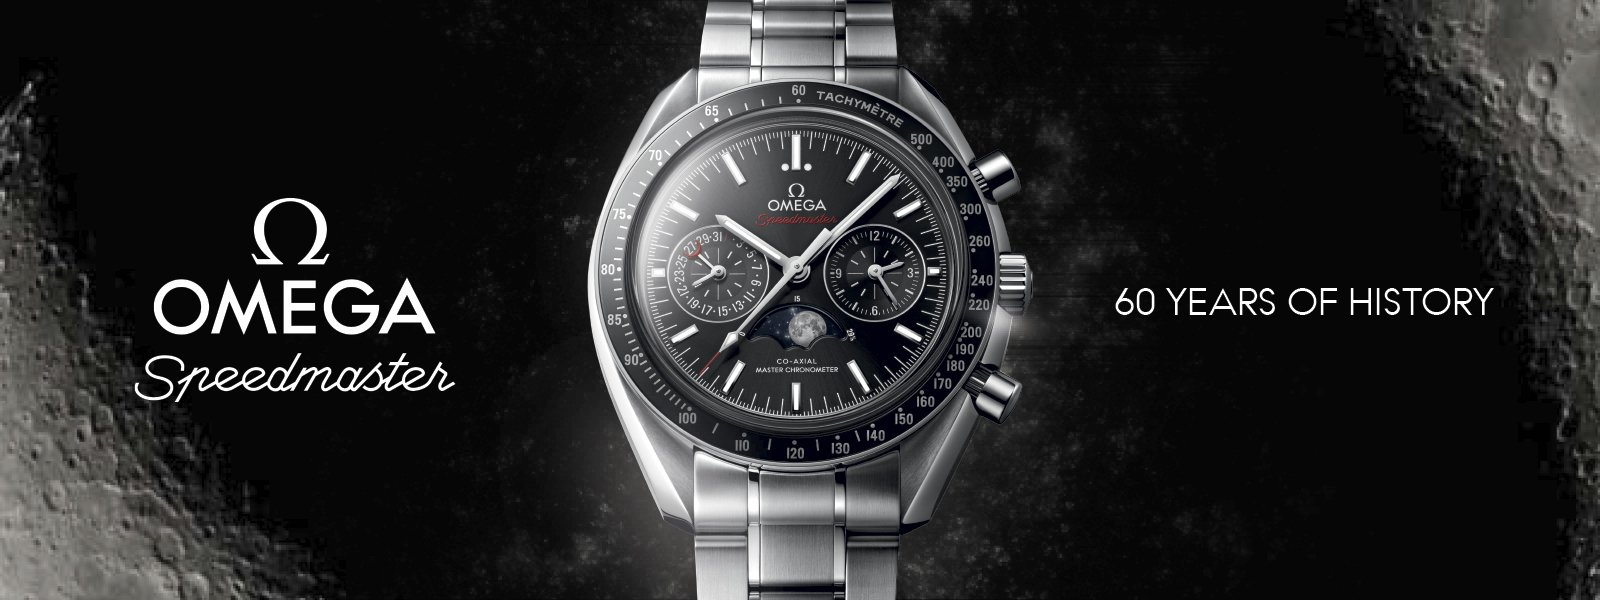 omega chronograph racing co en clone watch speedmaster axial watches soldier